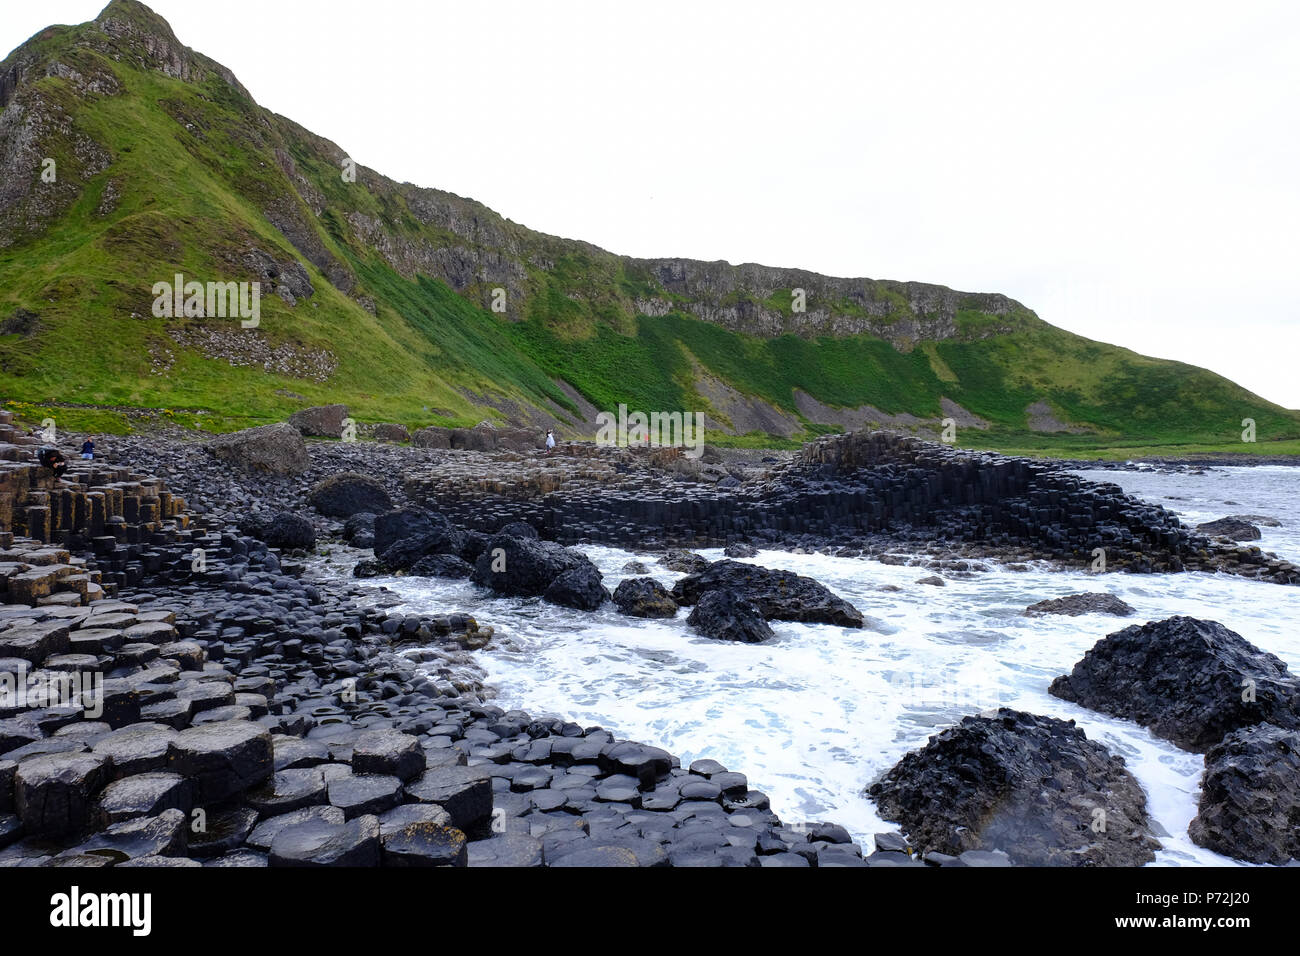 Giant's Causeway, UNESCO World Heritage Site, Bushmills, County Antrim, on the north coast of Northern Ireland. Ulster, Northern Ireland, UK - Stock Image